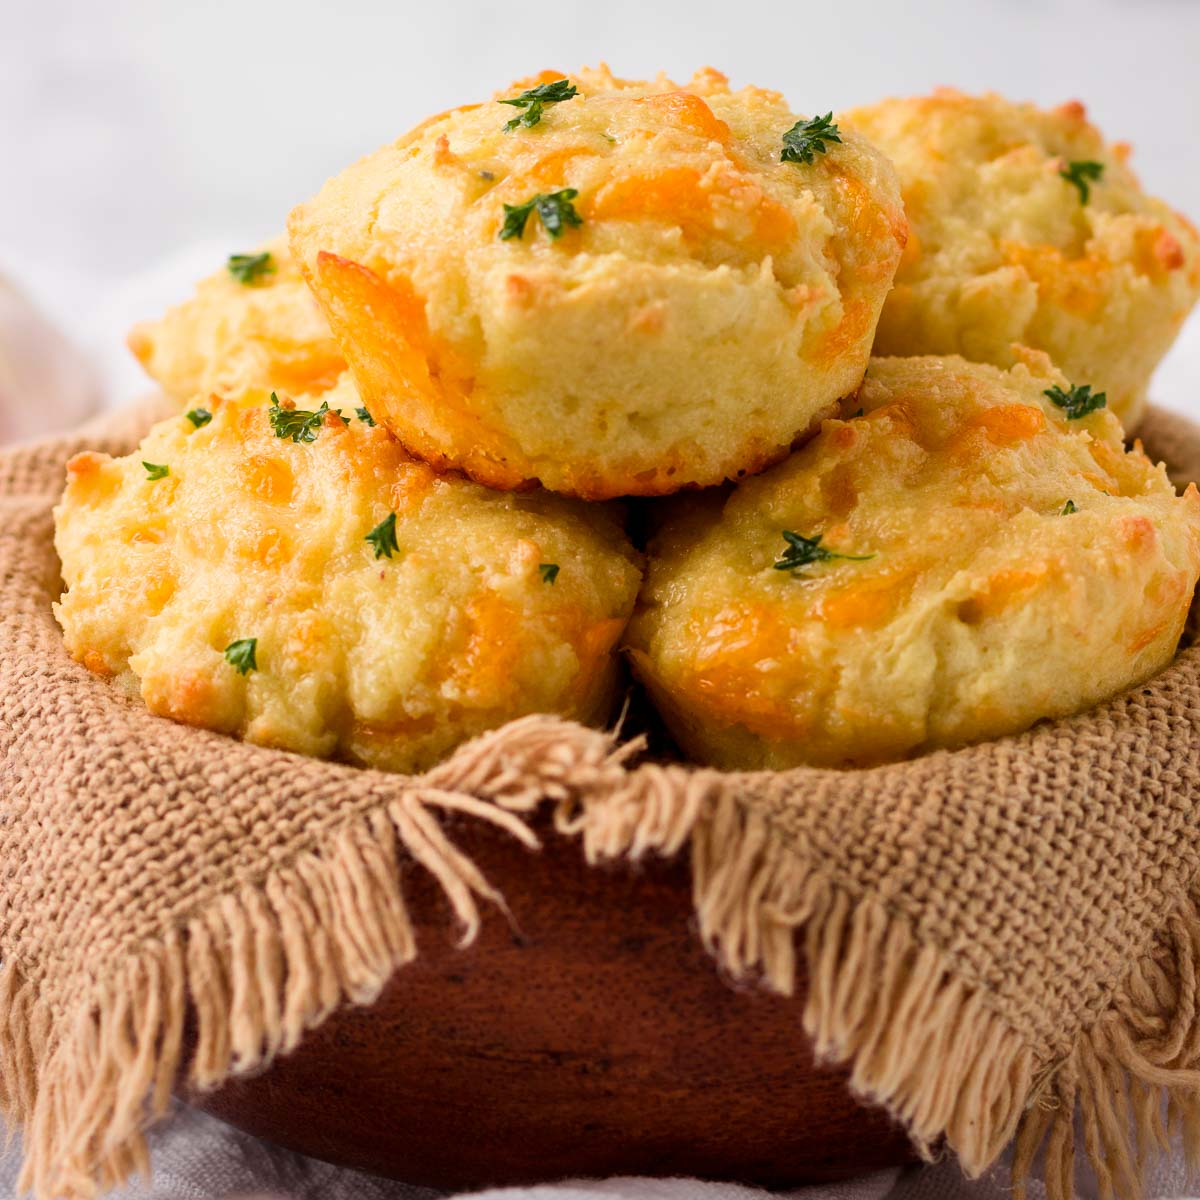 A basket of cheesy garlic biscuits that are low carb.